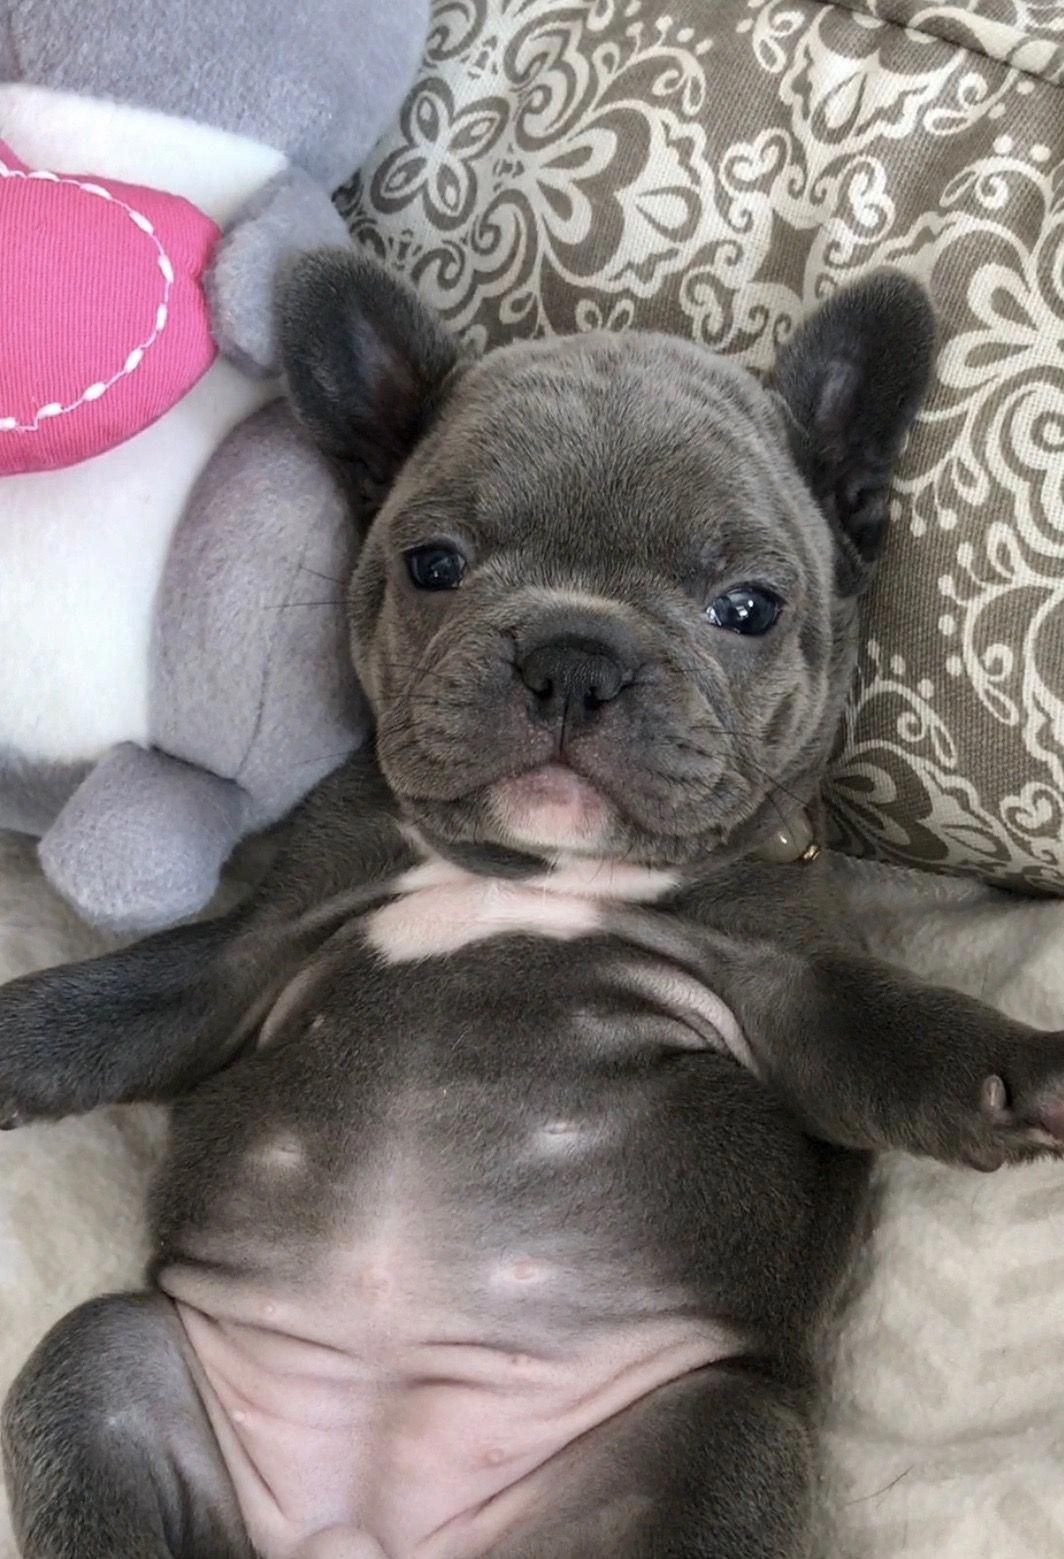 Awesome French Bulldogs Information Is Offered On Our Web Pages Have A Look And You Will Not Be Sorry Yo Perros Bulldog Gatos Y Perros Lindos Perros Y Bebes